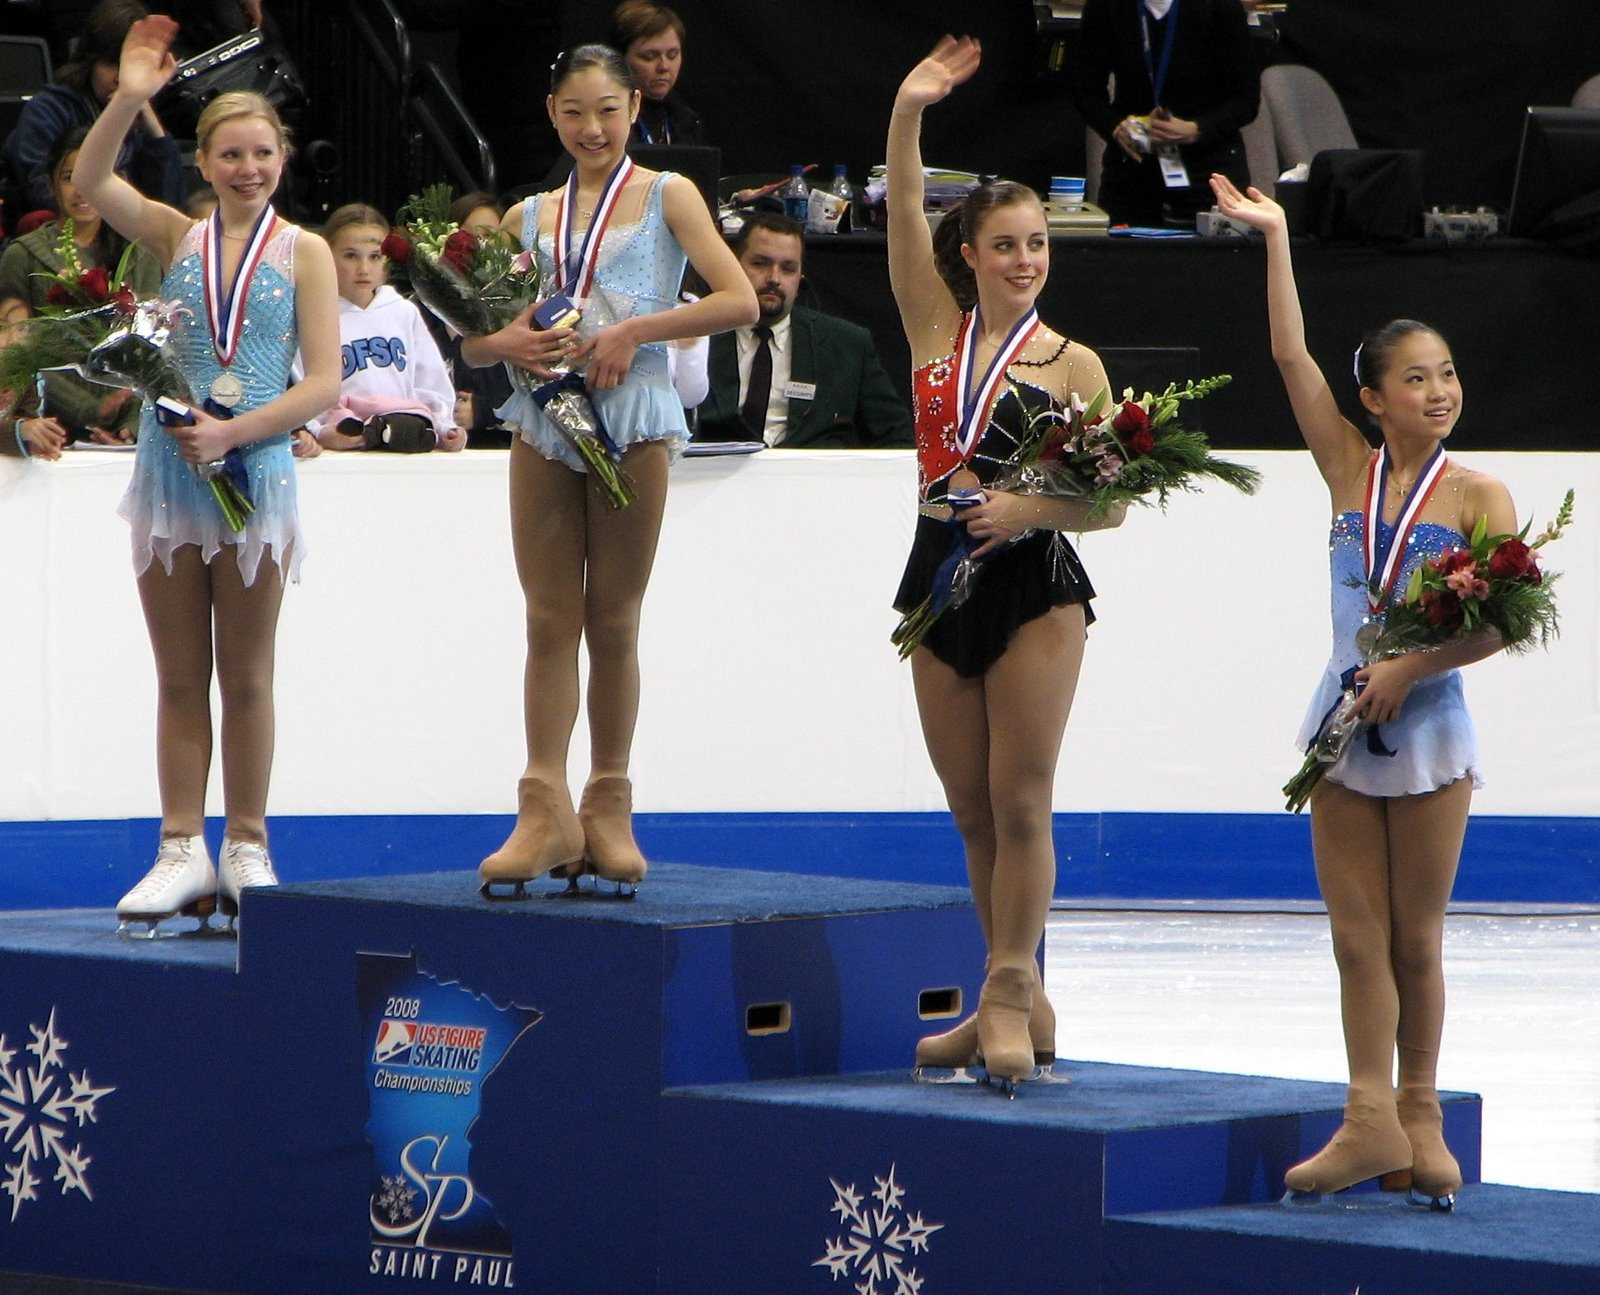 2008 adult figure skating championships